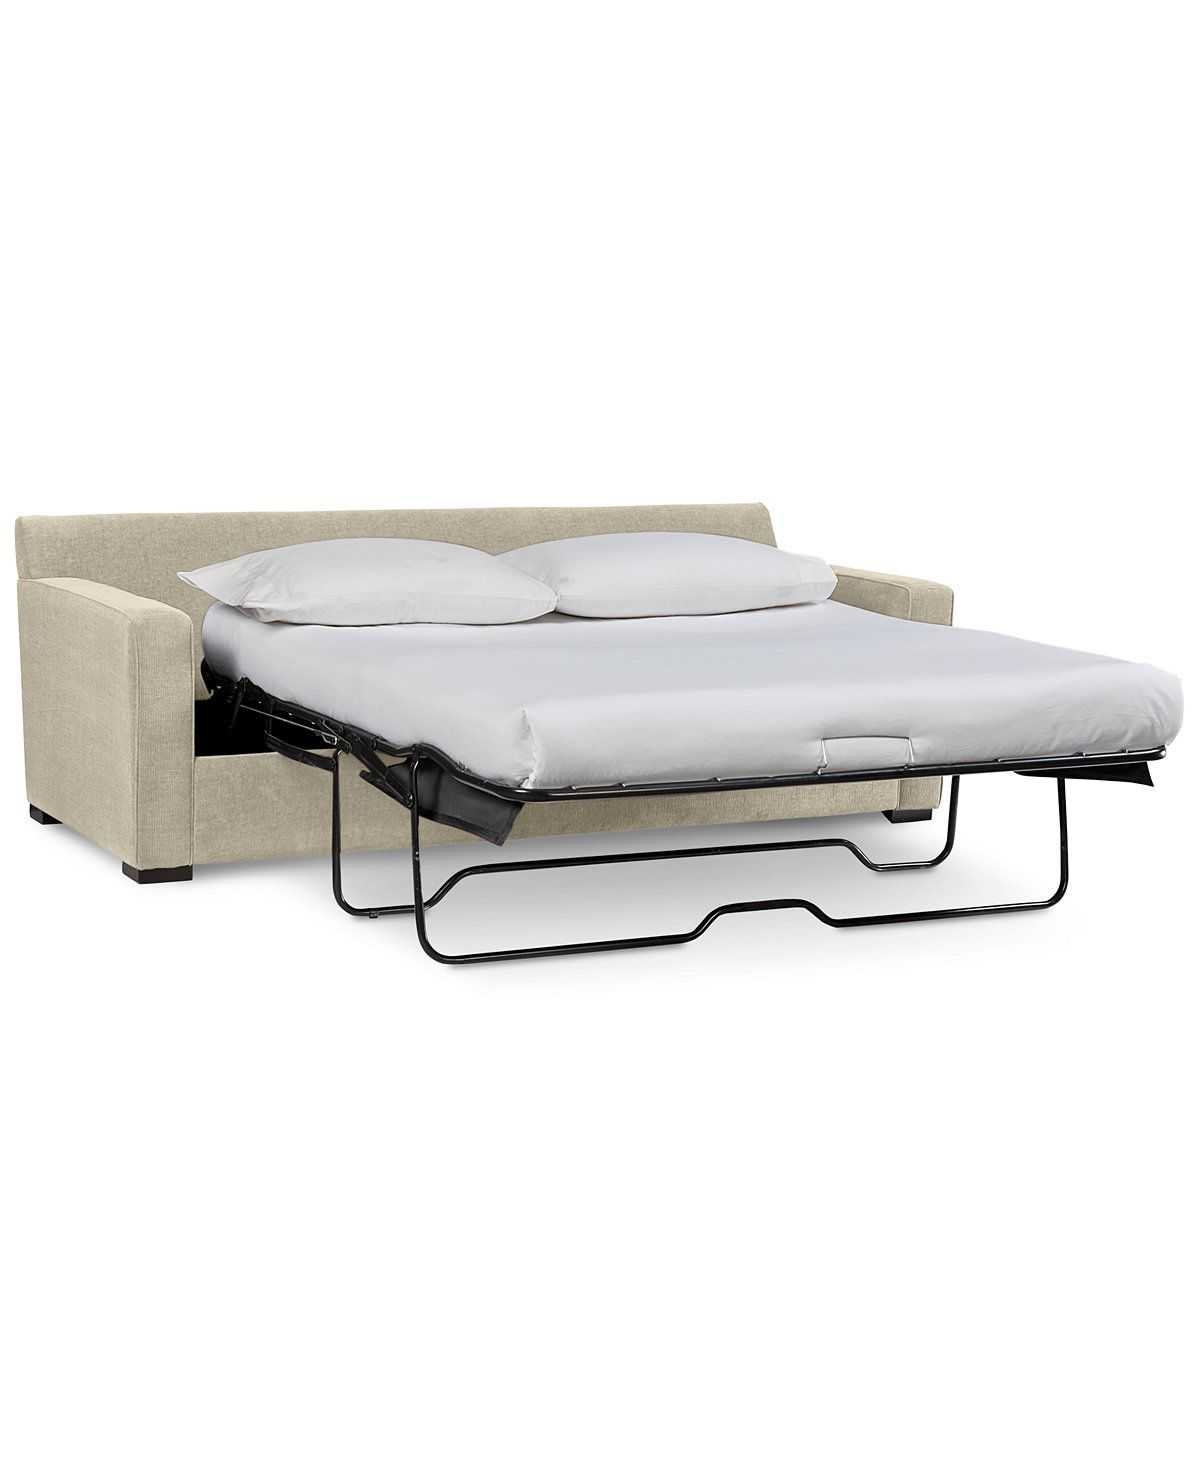 Furniture Radley 86 Fabric Queen Sleeper Sofa Bed Created For